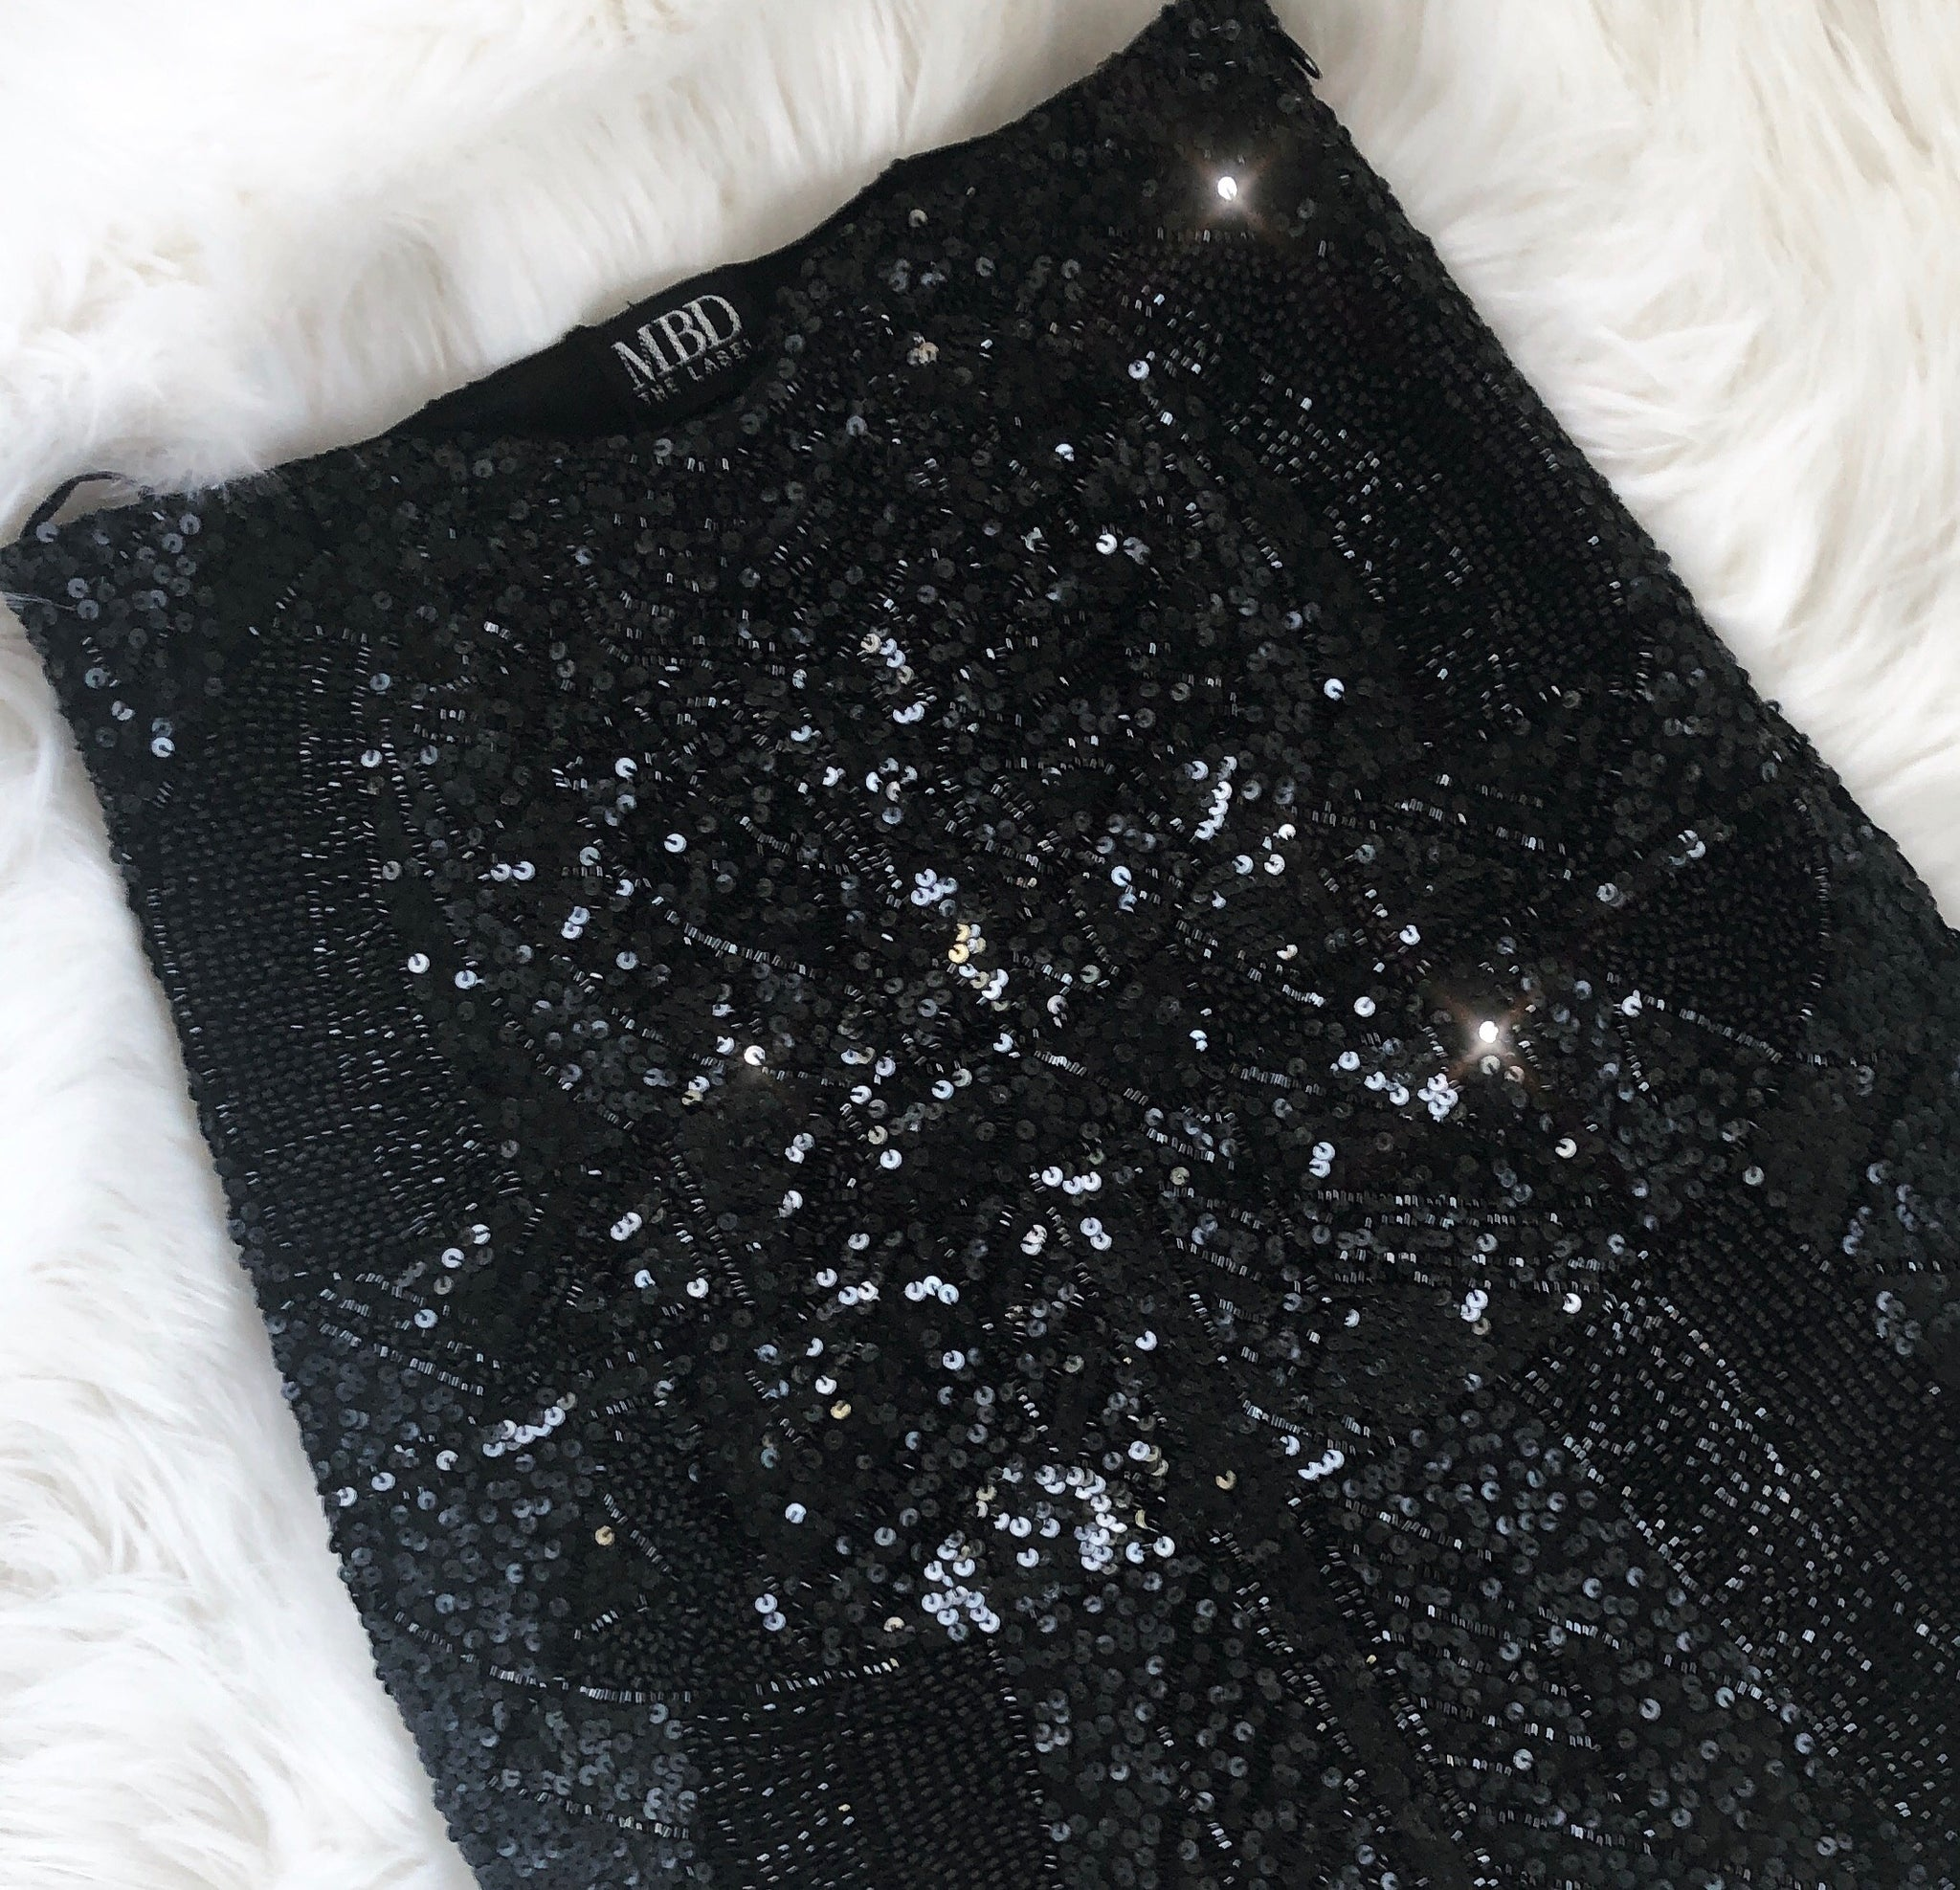 BLACK Sequin midi (knee) skirt